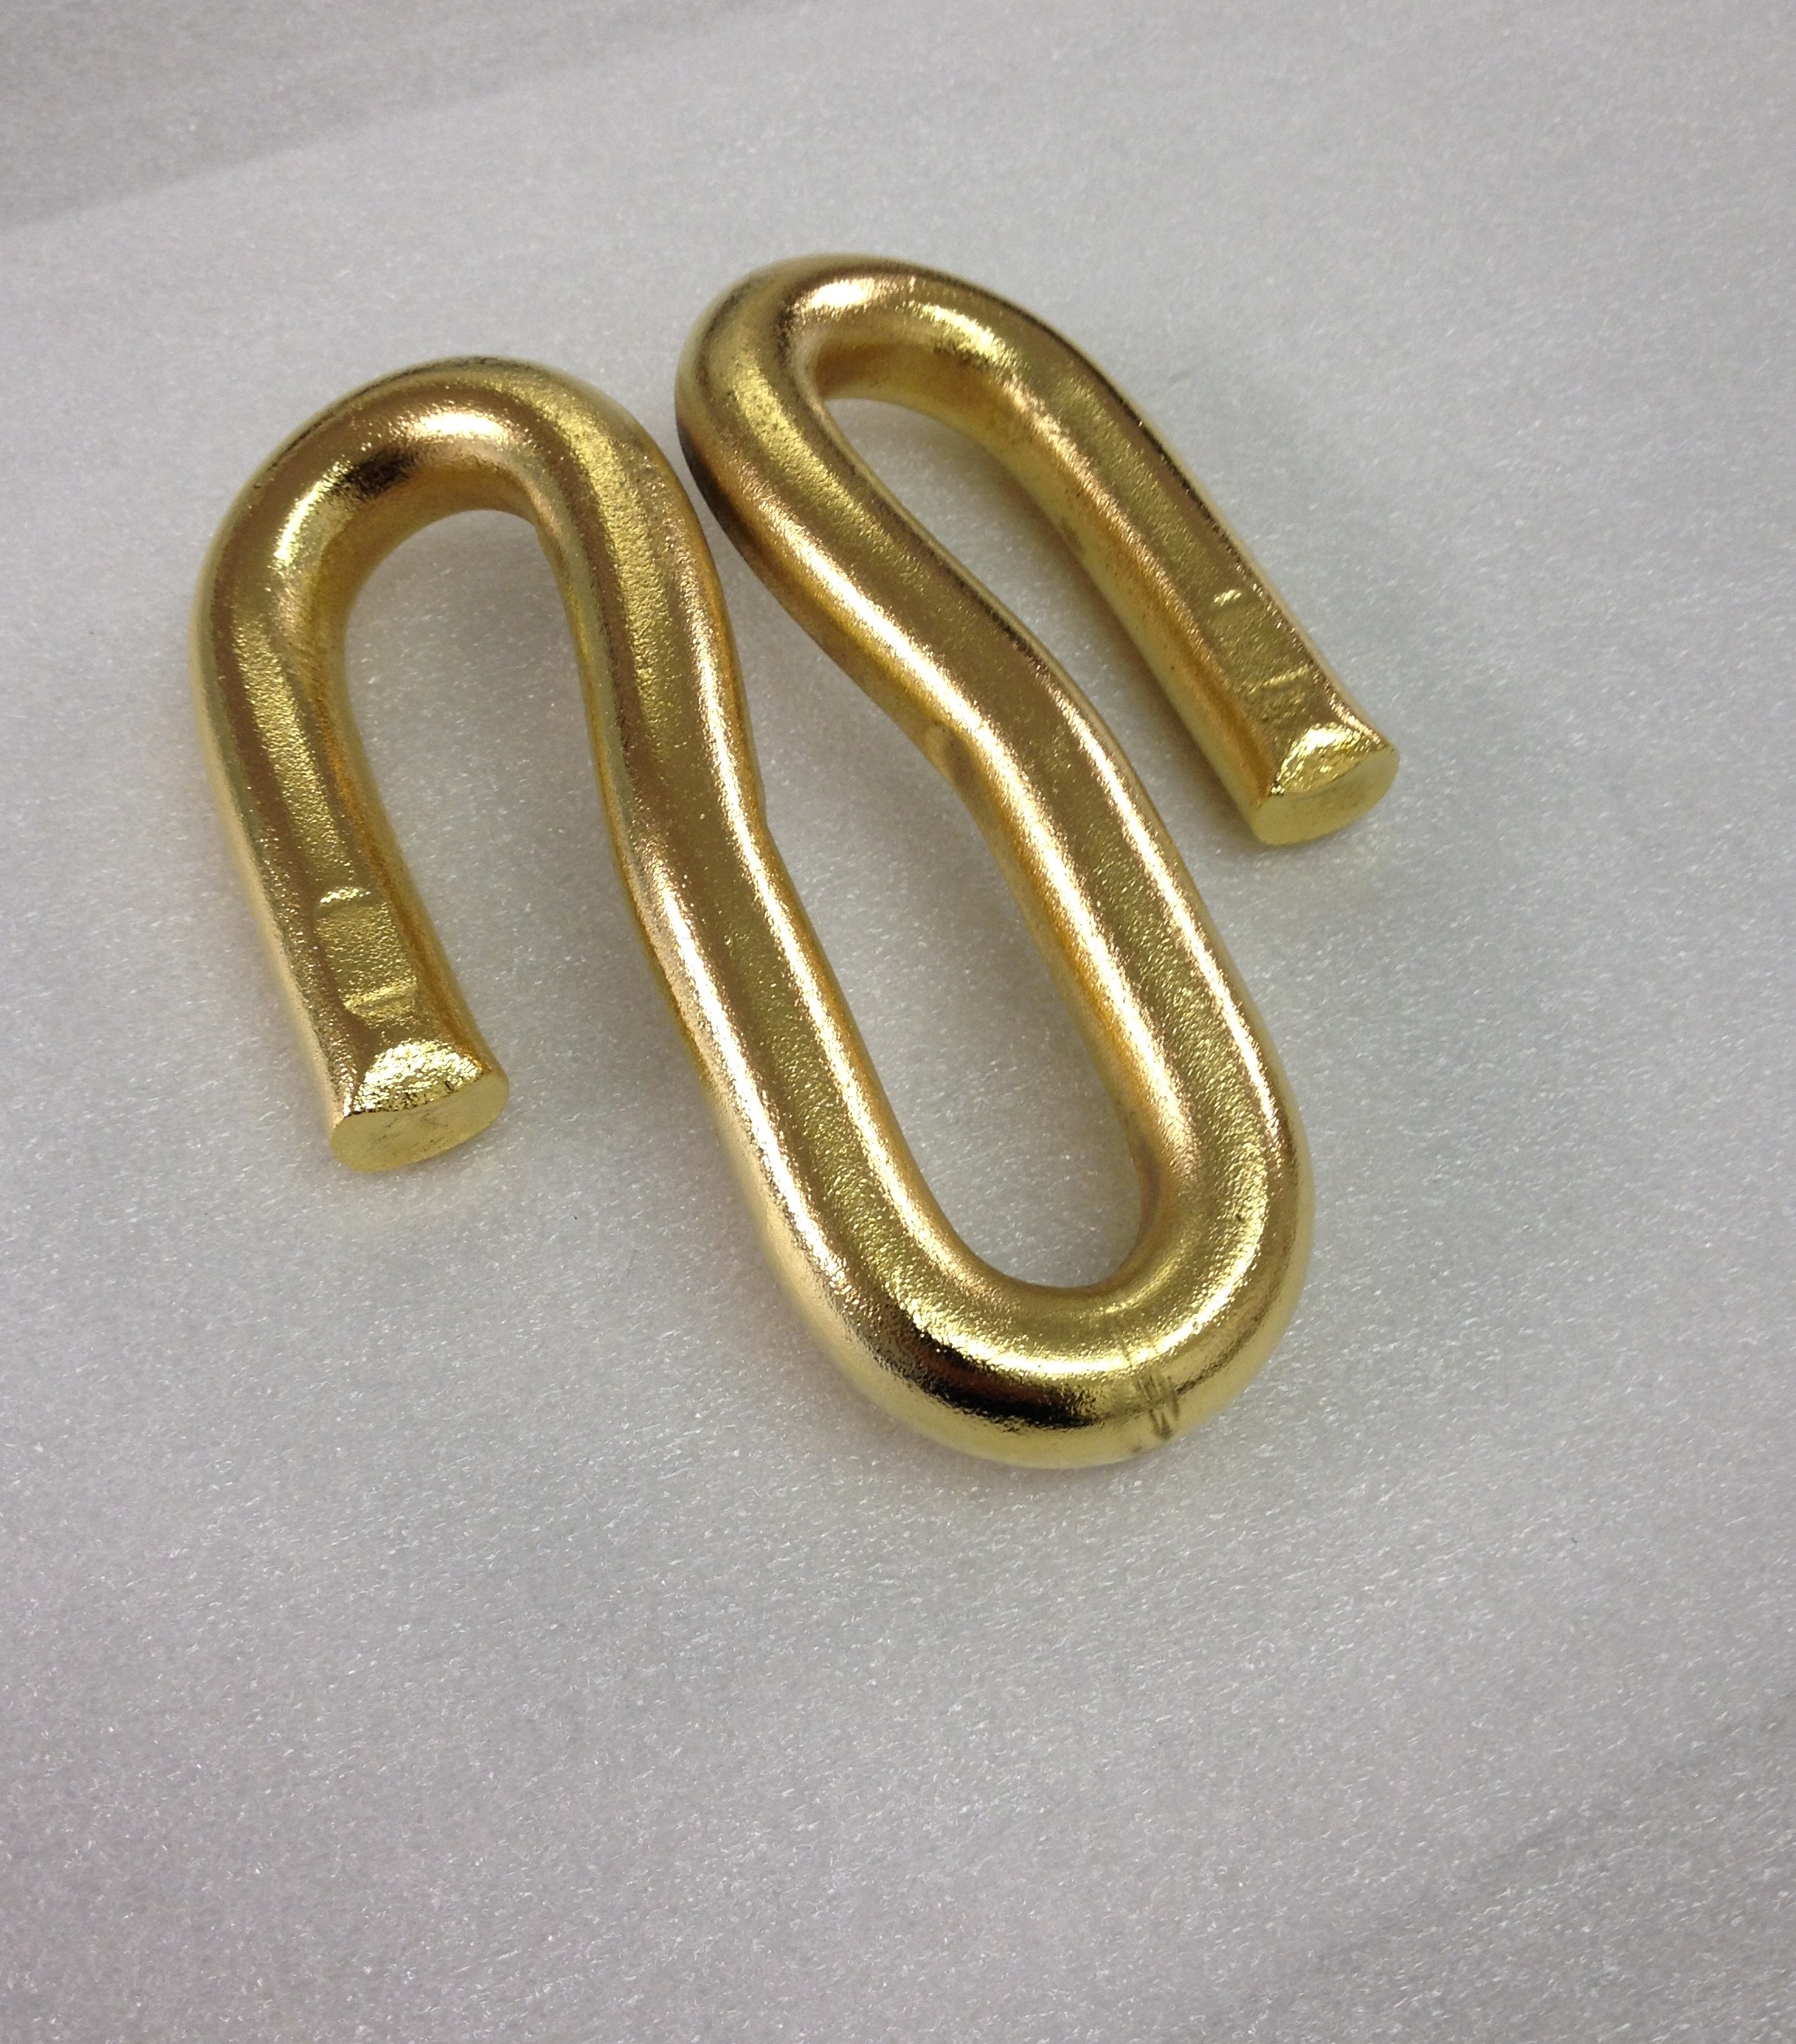 24k gold plated railway clip